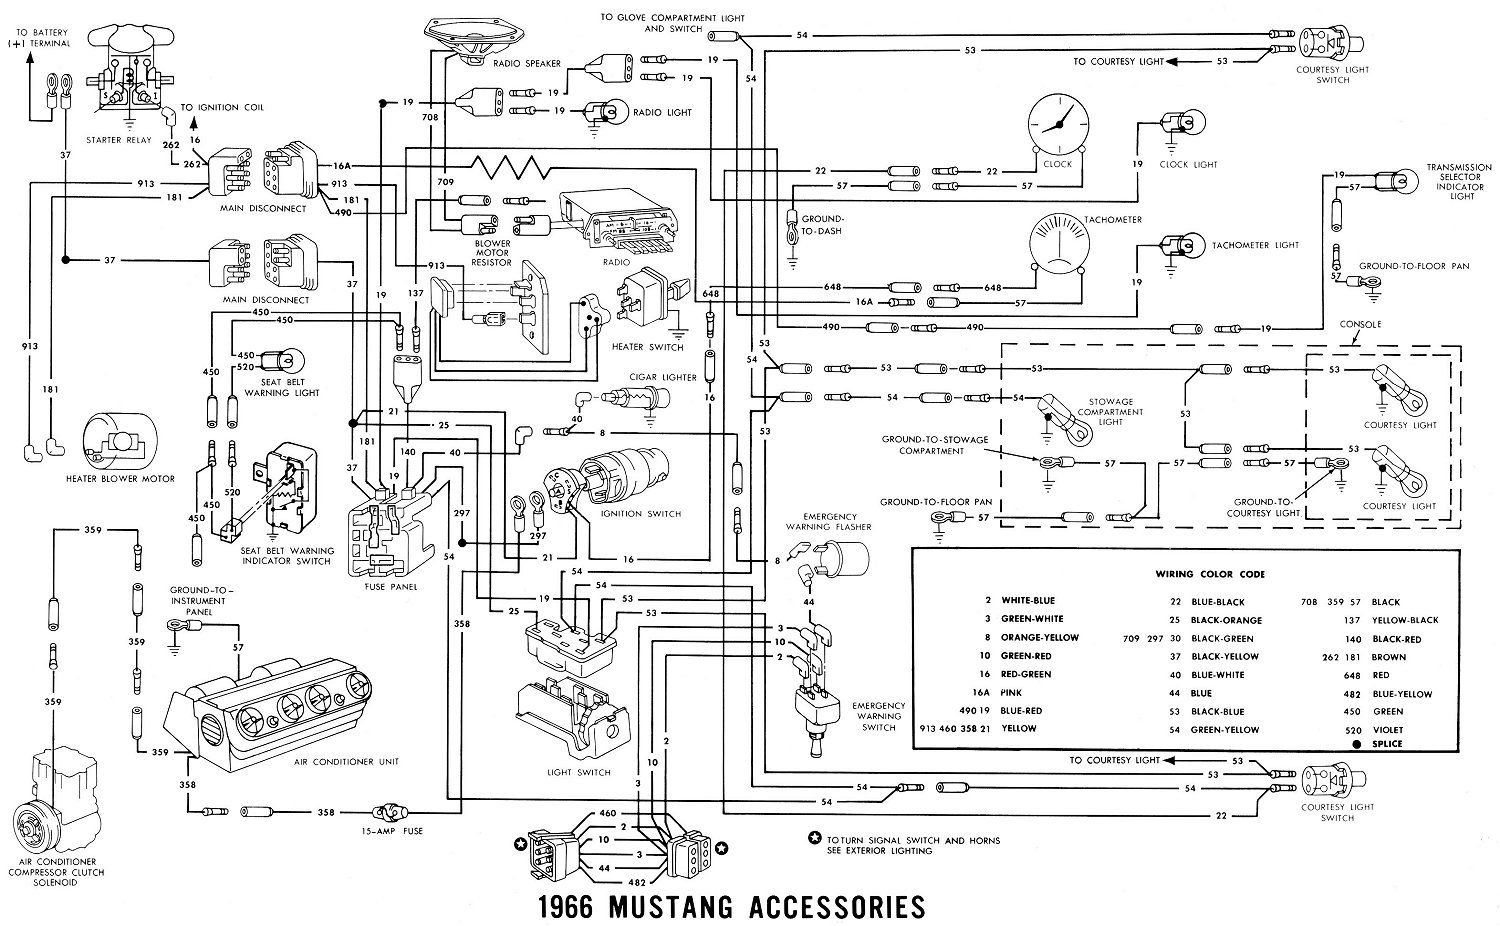 66acces1 63 fairlane wiper motor wiring hot rod forum hotrodders 1966 fairlane wiring diagram at aneh.co